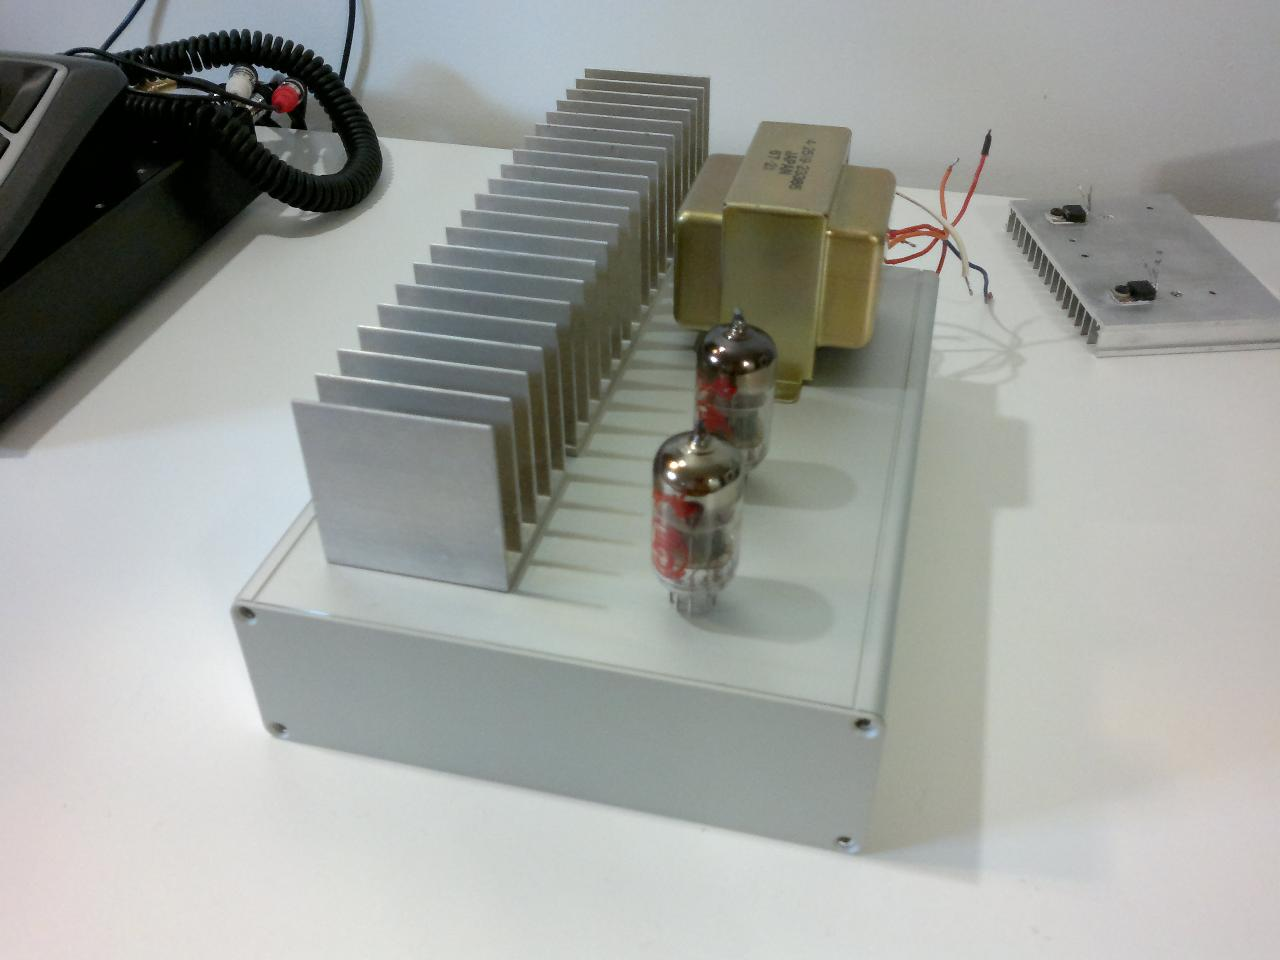 Hammond 1455 enclosure for my Starving Student. Heat sink option.